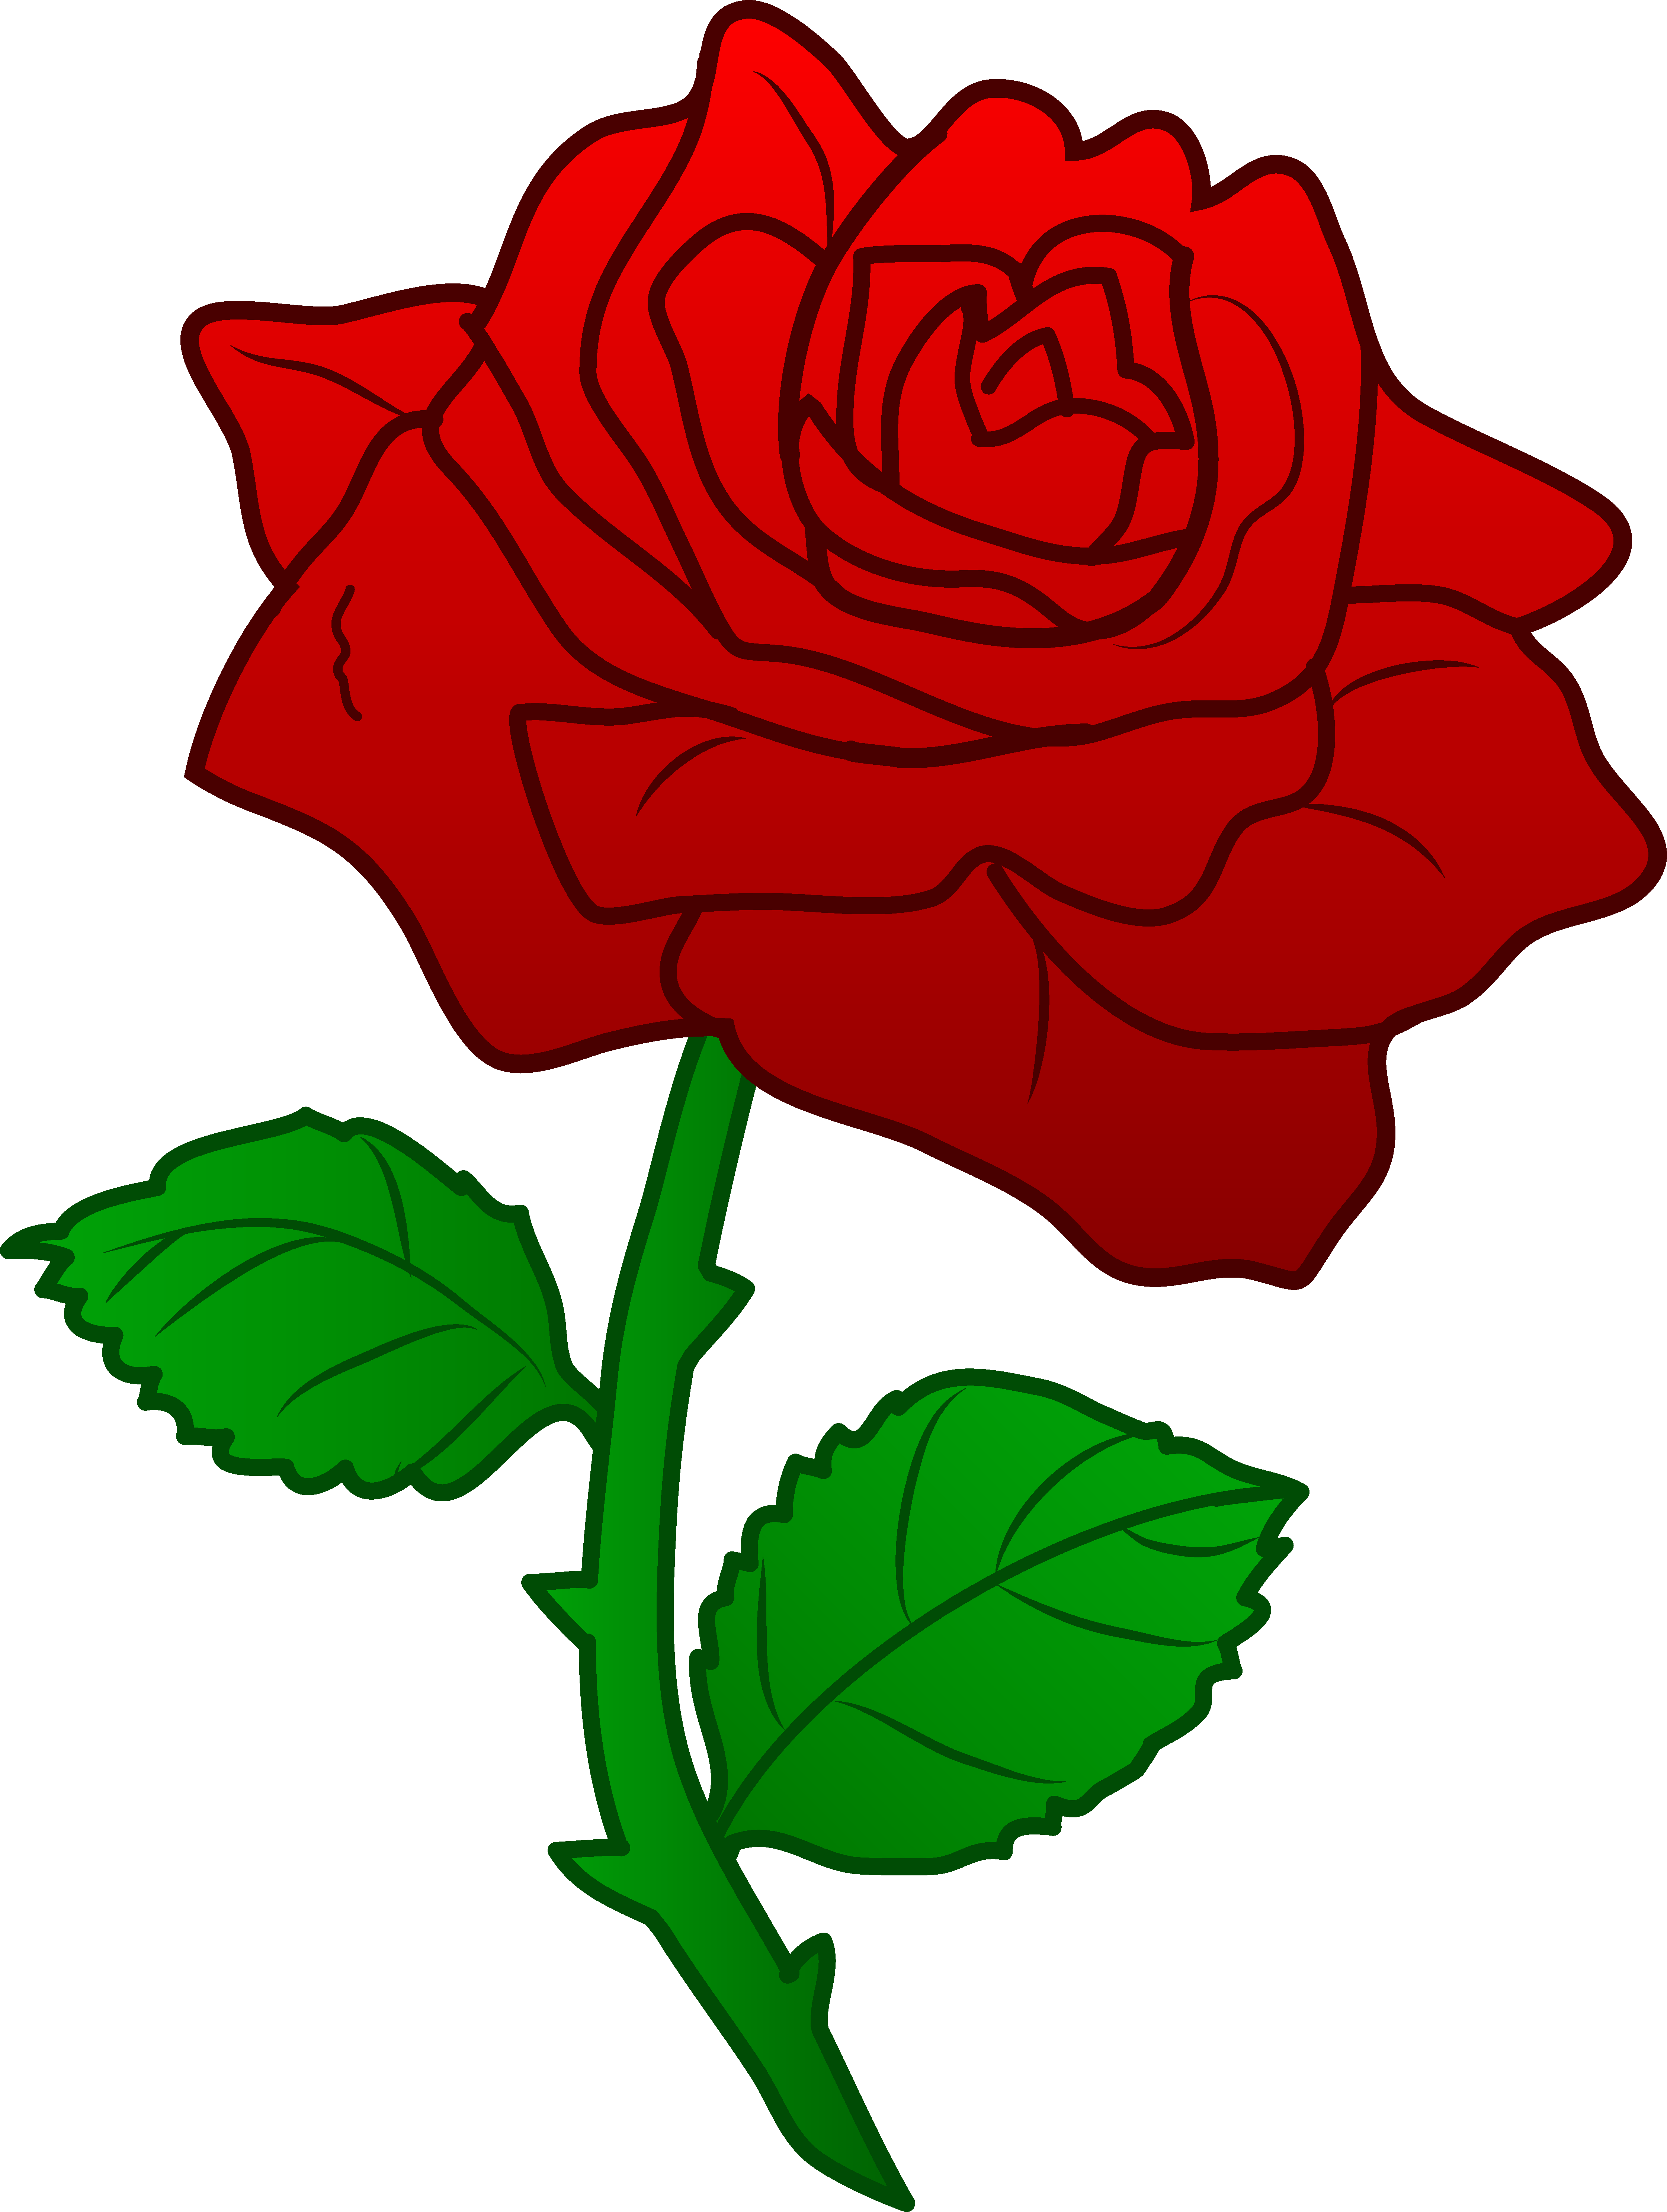 Clipart Rose-clipart rose-2